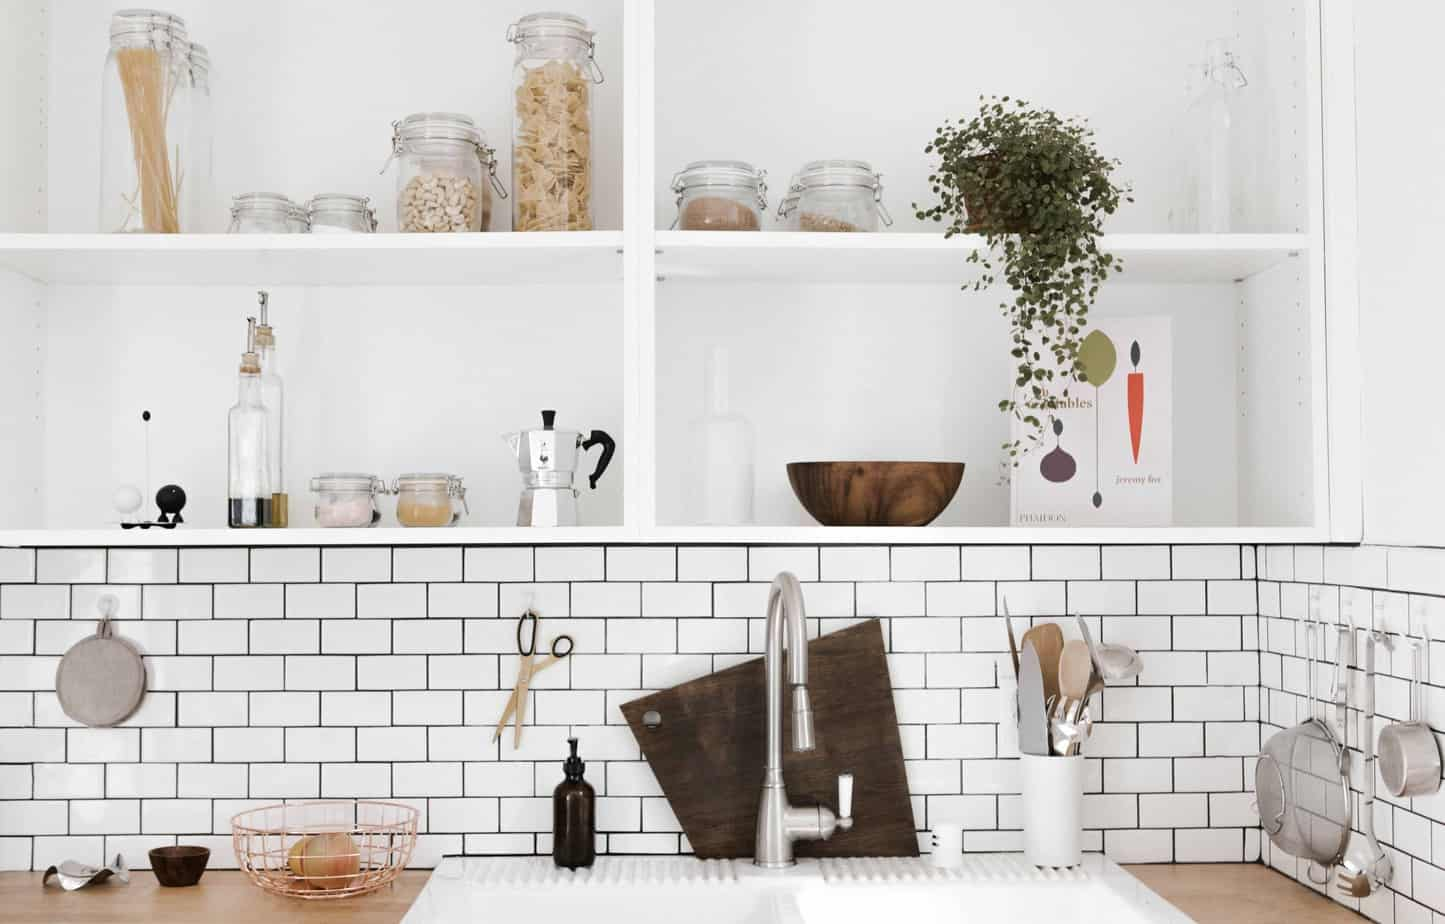 6 Essentials For An Organized Kitchen